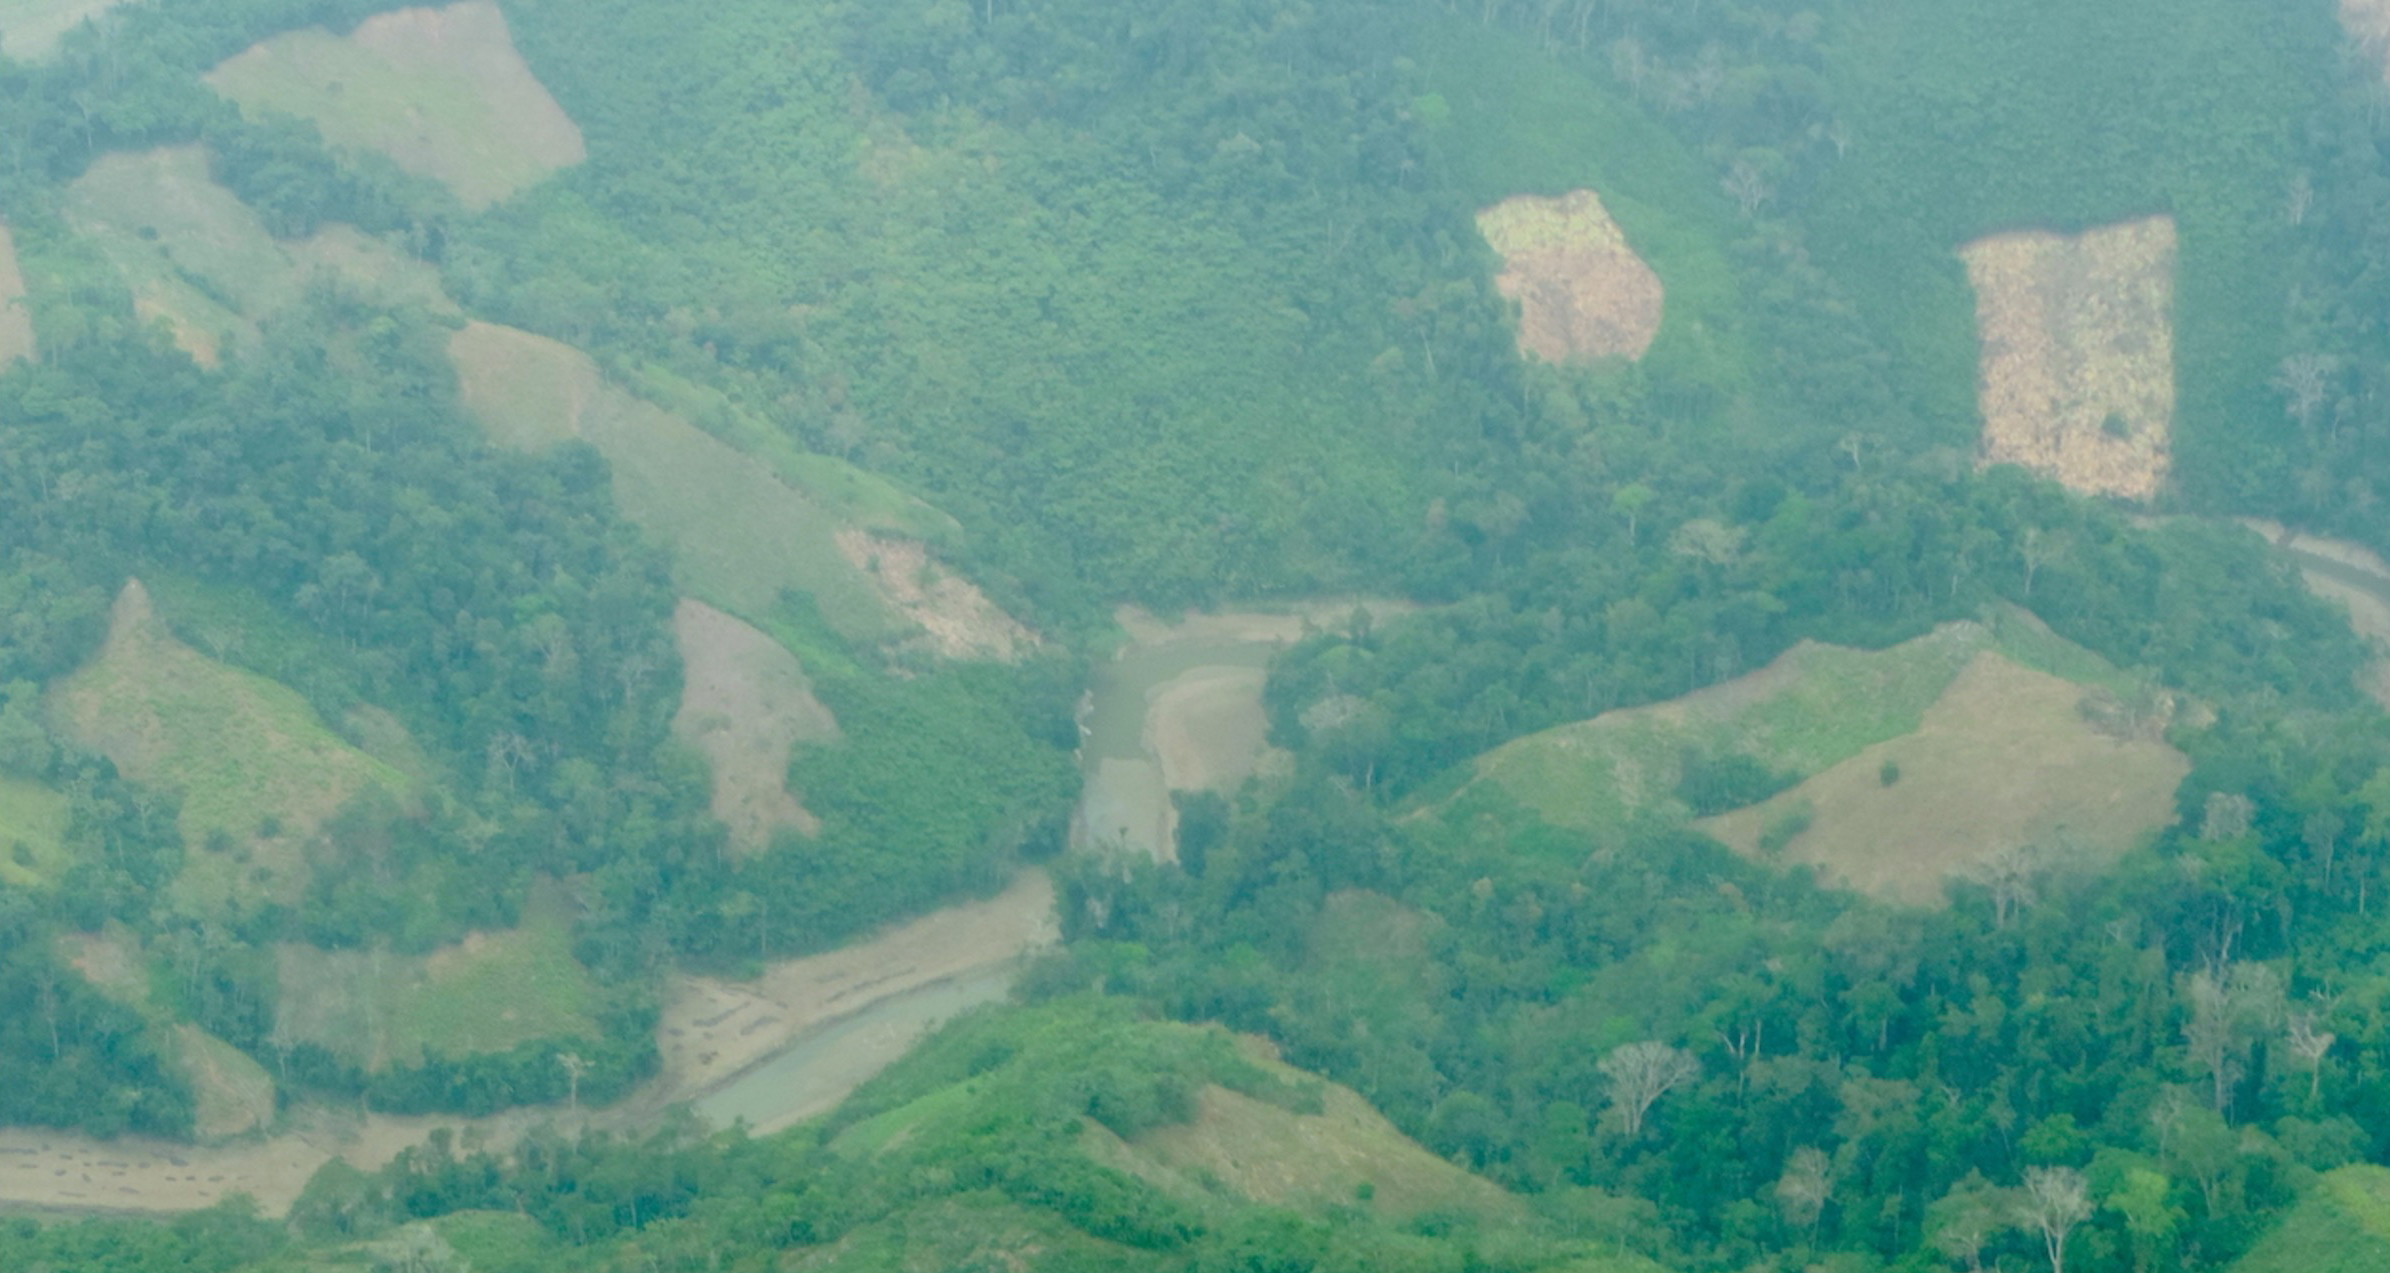 deforestation-in-colombia-paramillo-natural-national-park